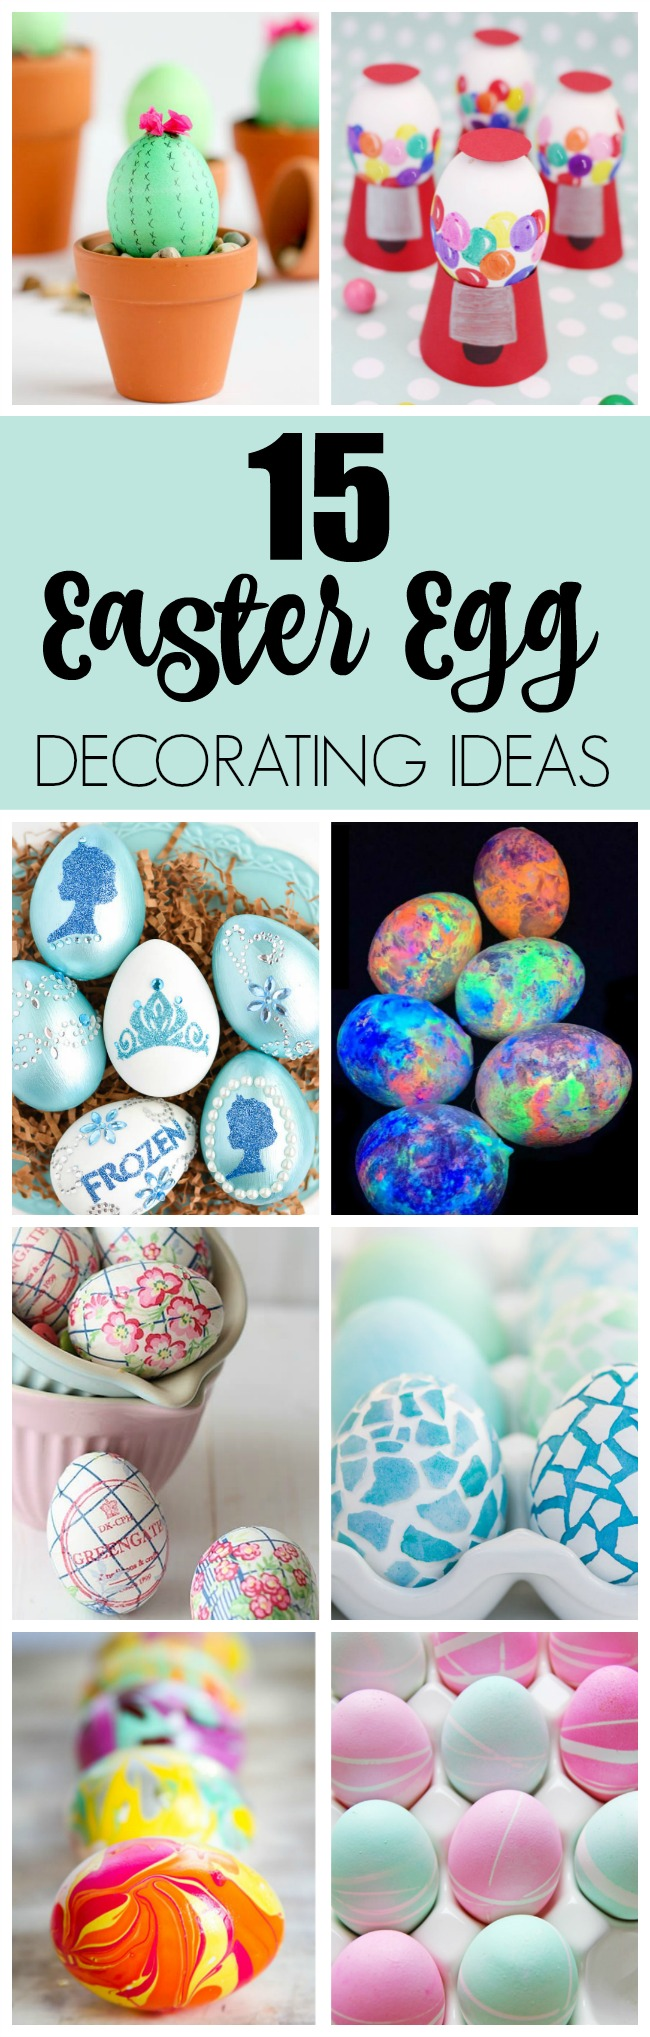 15 Creative Easter Egg Decorating Ideas